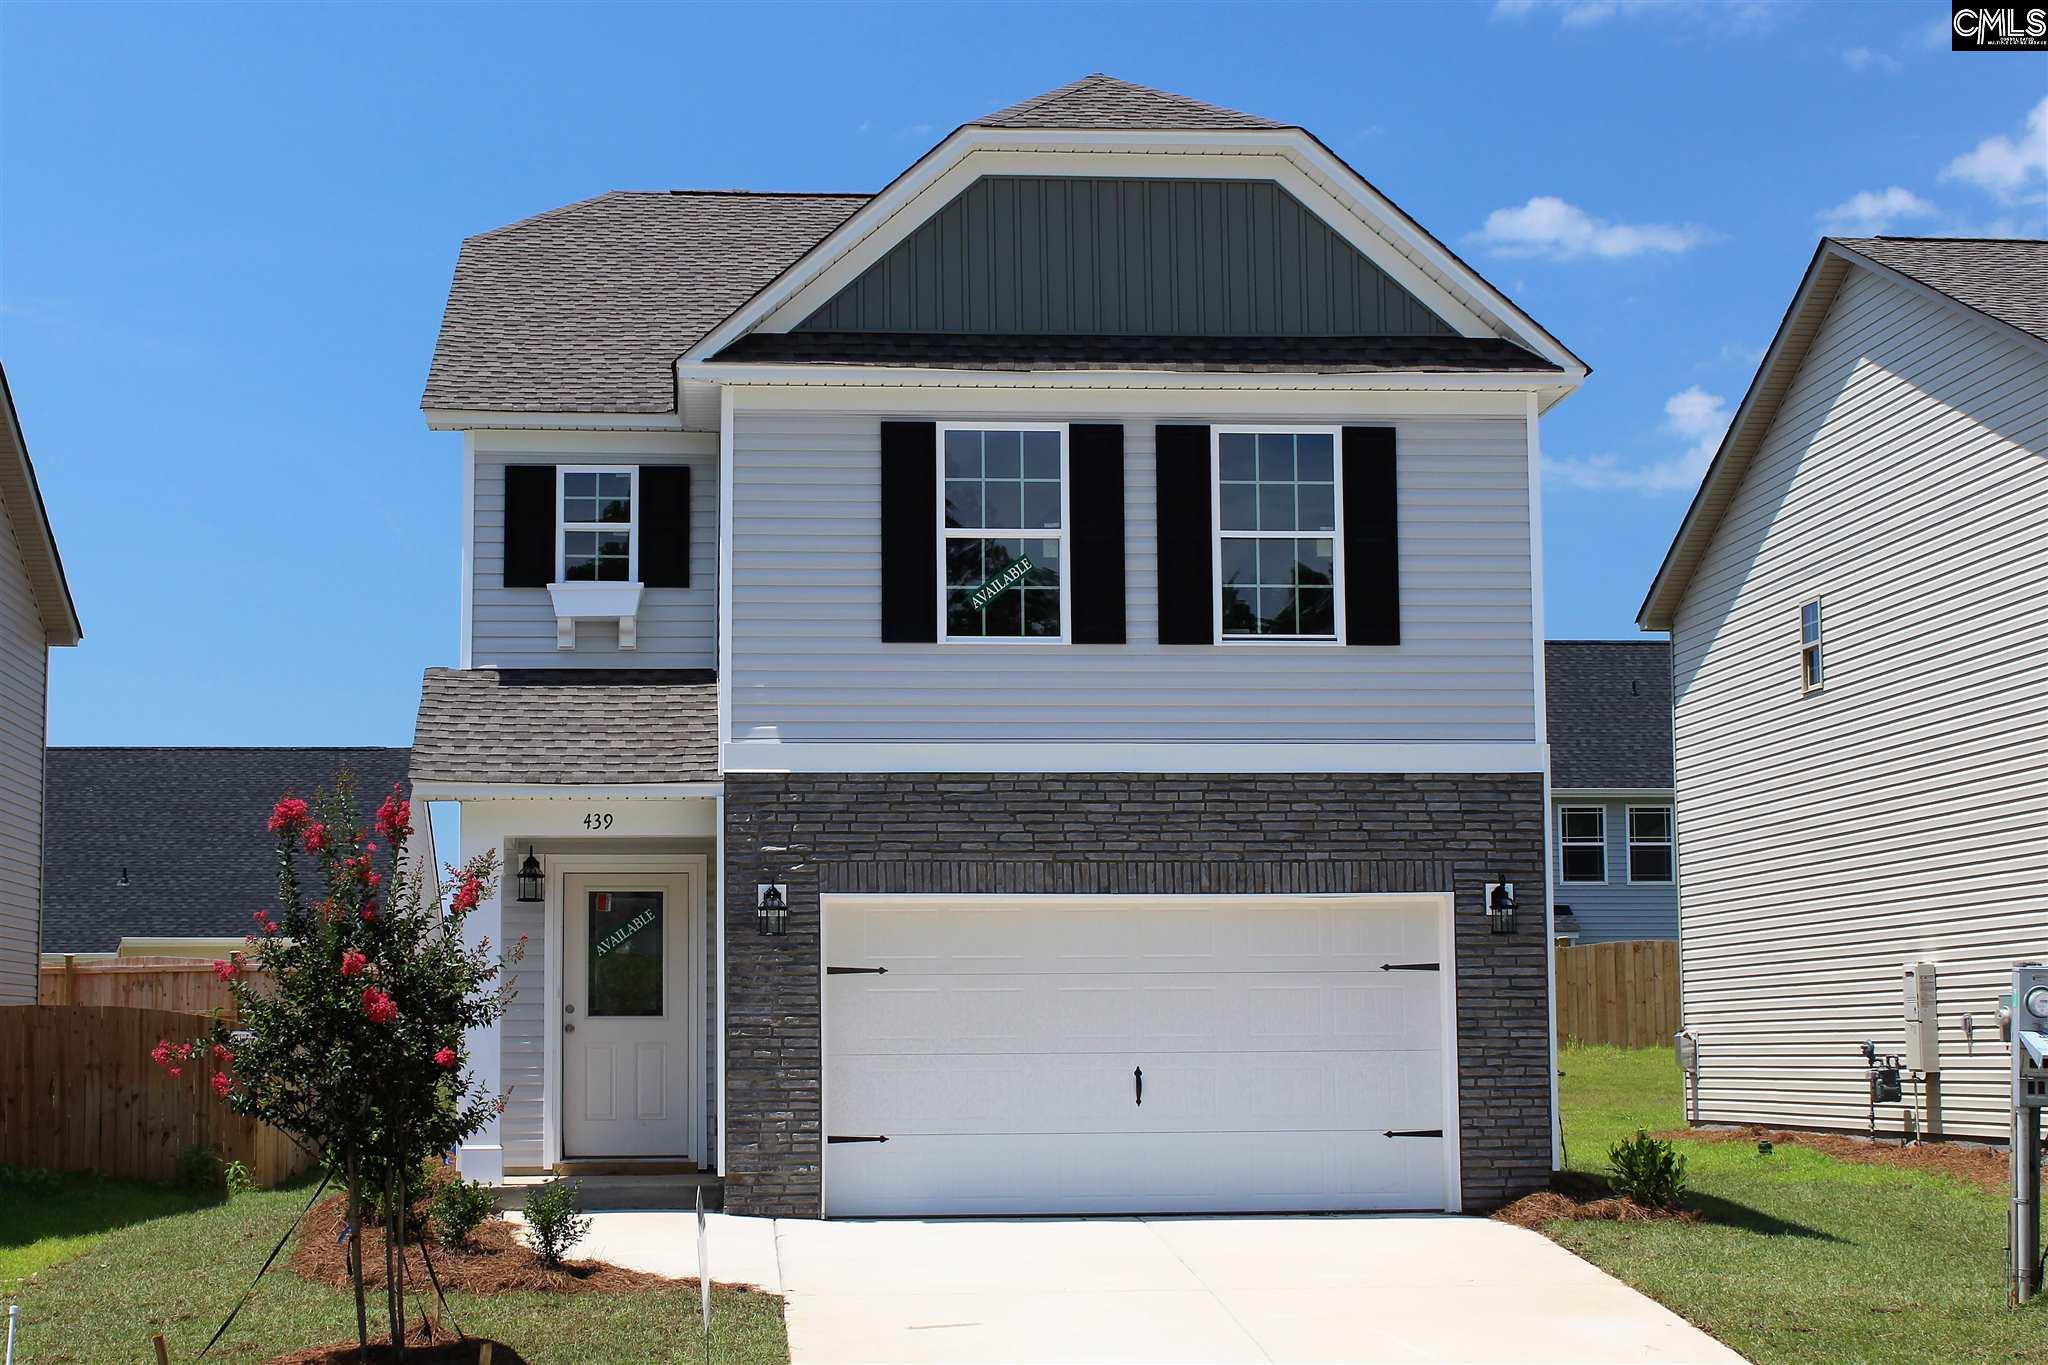 439 Fairford Blythewood, SC 29016